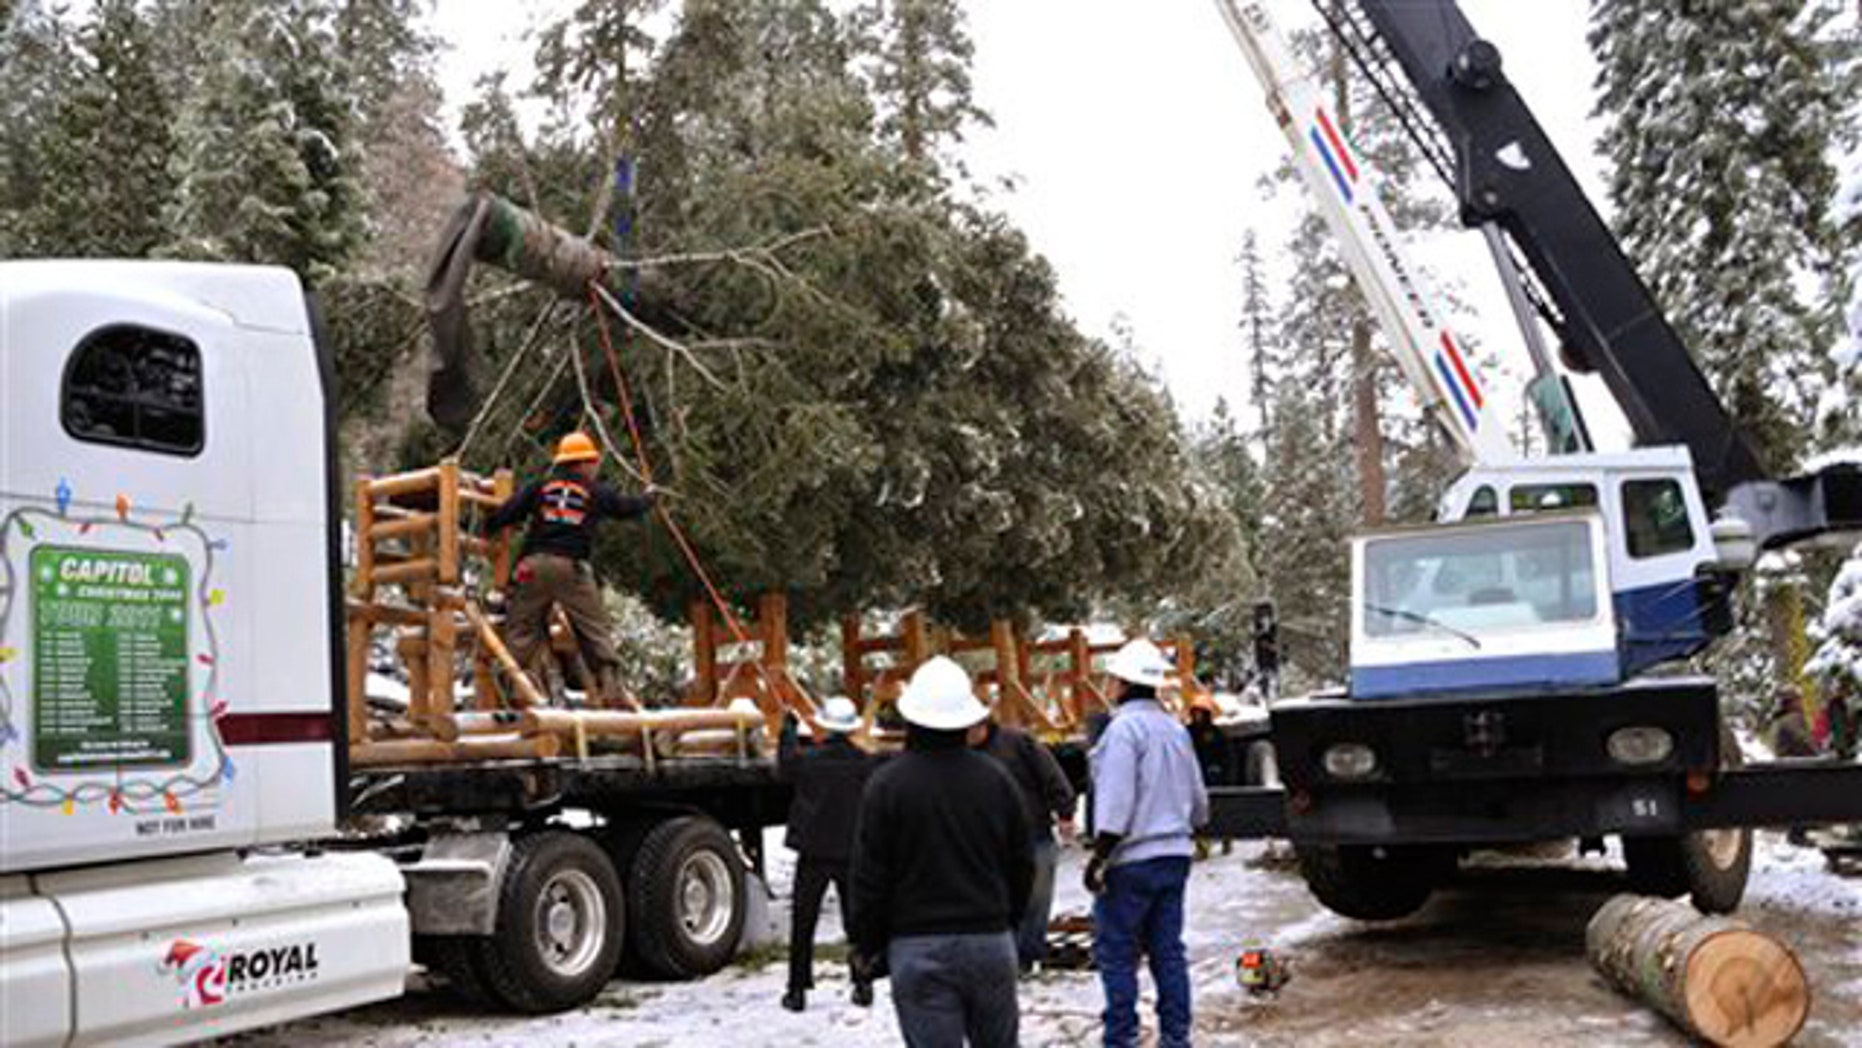 In this photo supplied by the Stanislaus National Forest, a 65-foot white fir tree is loaded onto a truck for its 20-day journey to Washington Saturday, Nov. 5, 2011, after the U.S. Capitol Christmas tree was cut from the Stanislaus National Forest near Sonora, Calif.